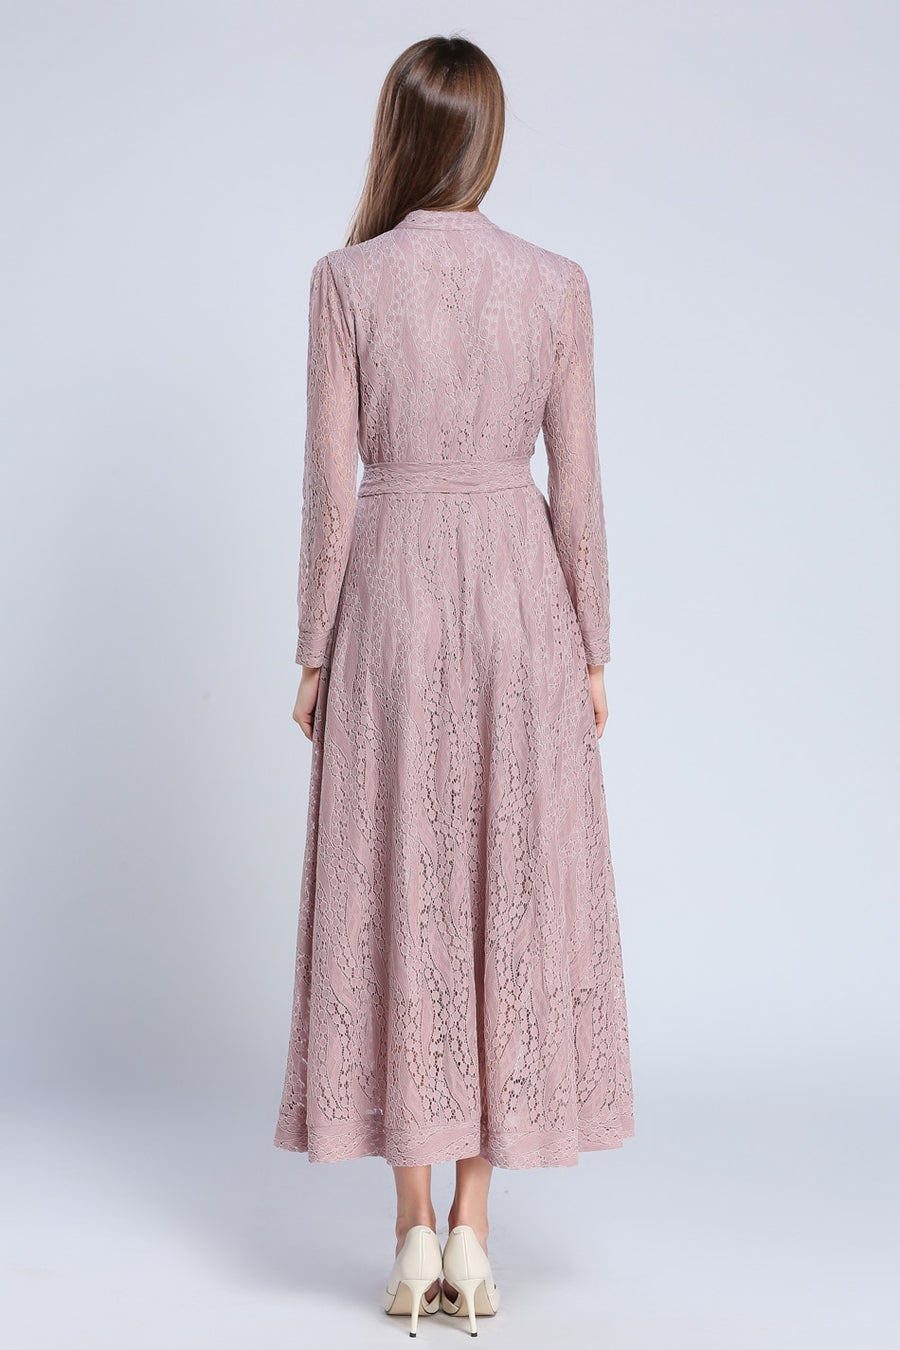 Light Pink Long Sleeve Lace Hollow Out Maxi Dress with Buttons Front